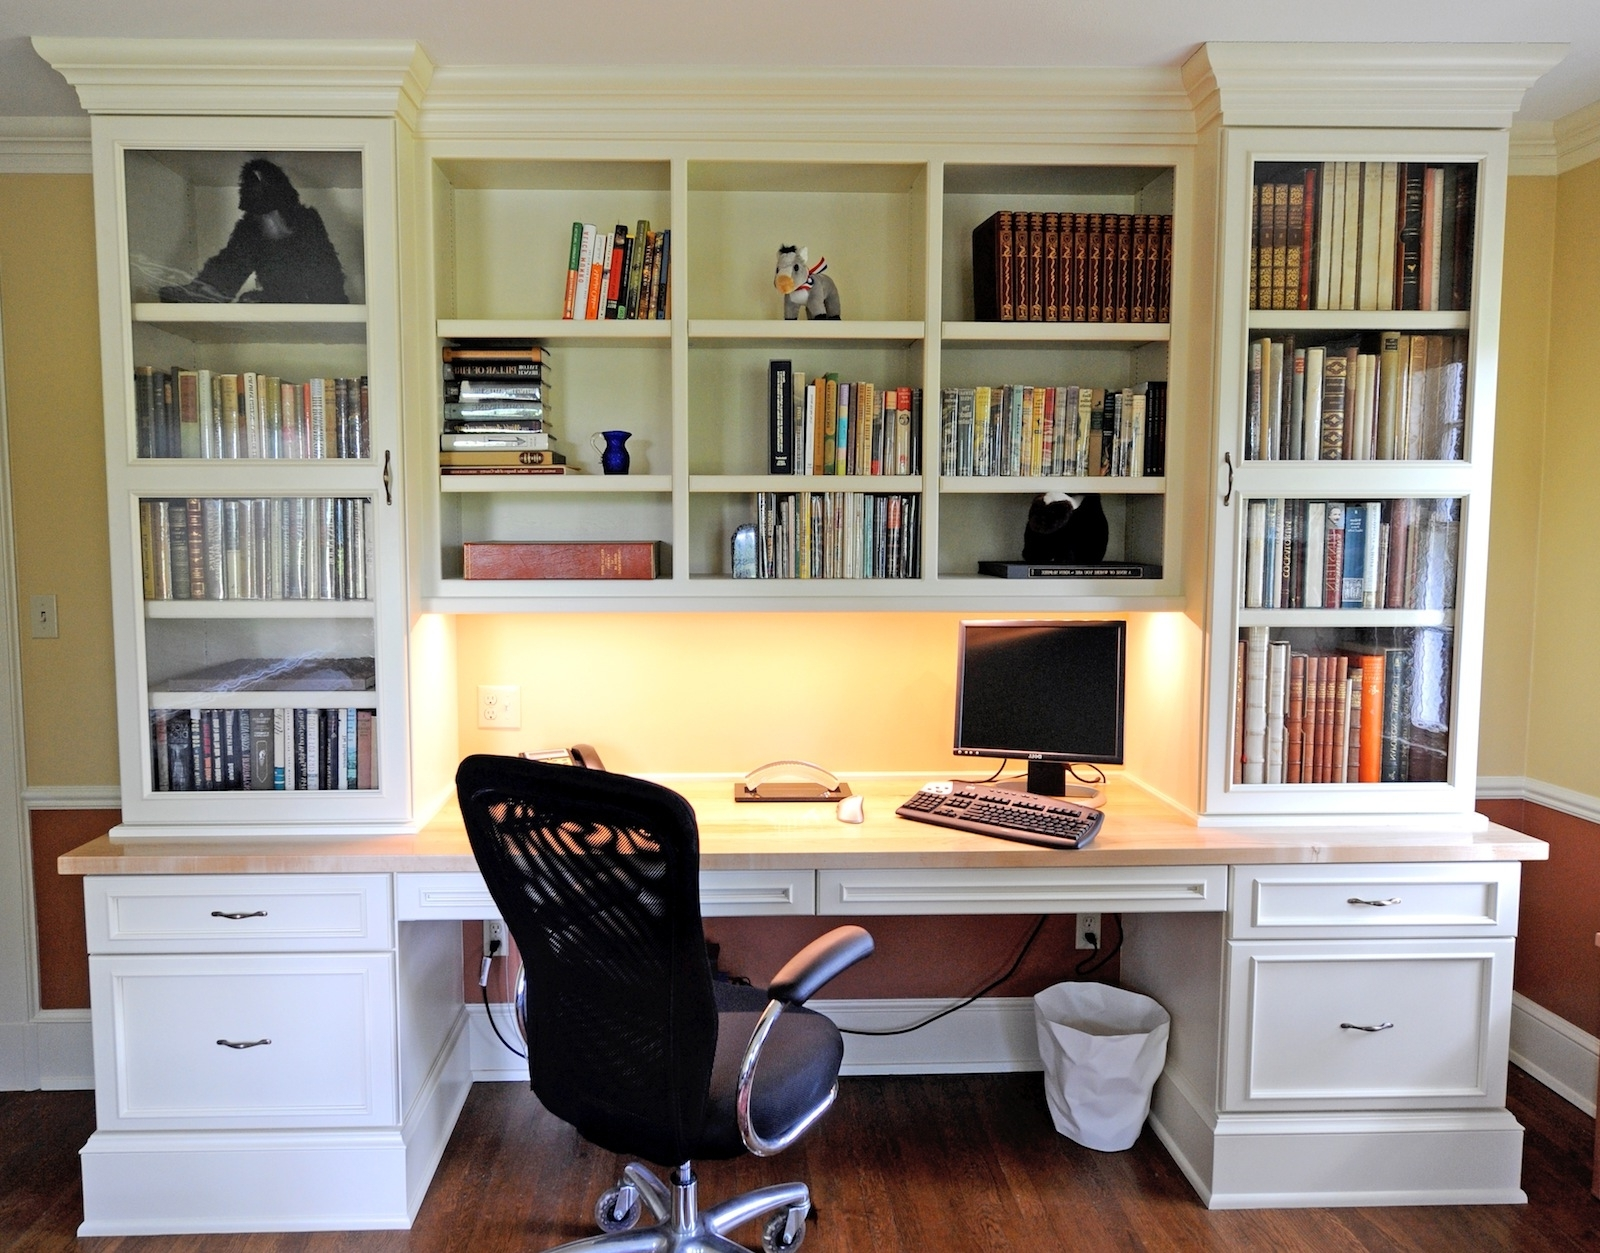 Large White Wooden Bookshelf With White Wooden Drawers And Desk In Most Recent Study Bookshelves (View 9 of 15)